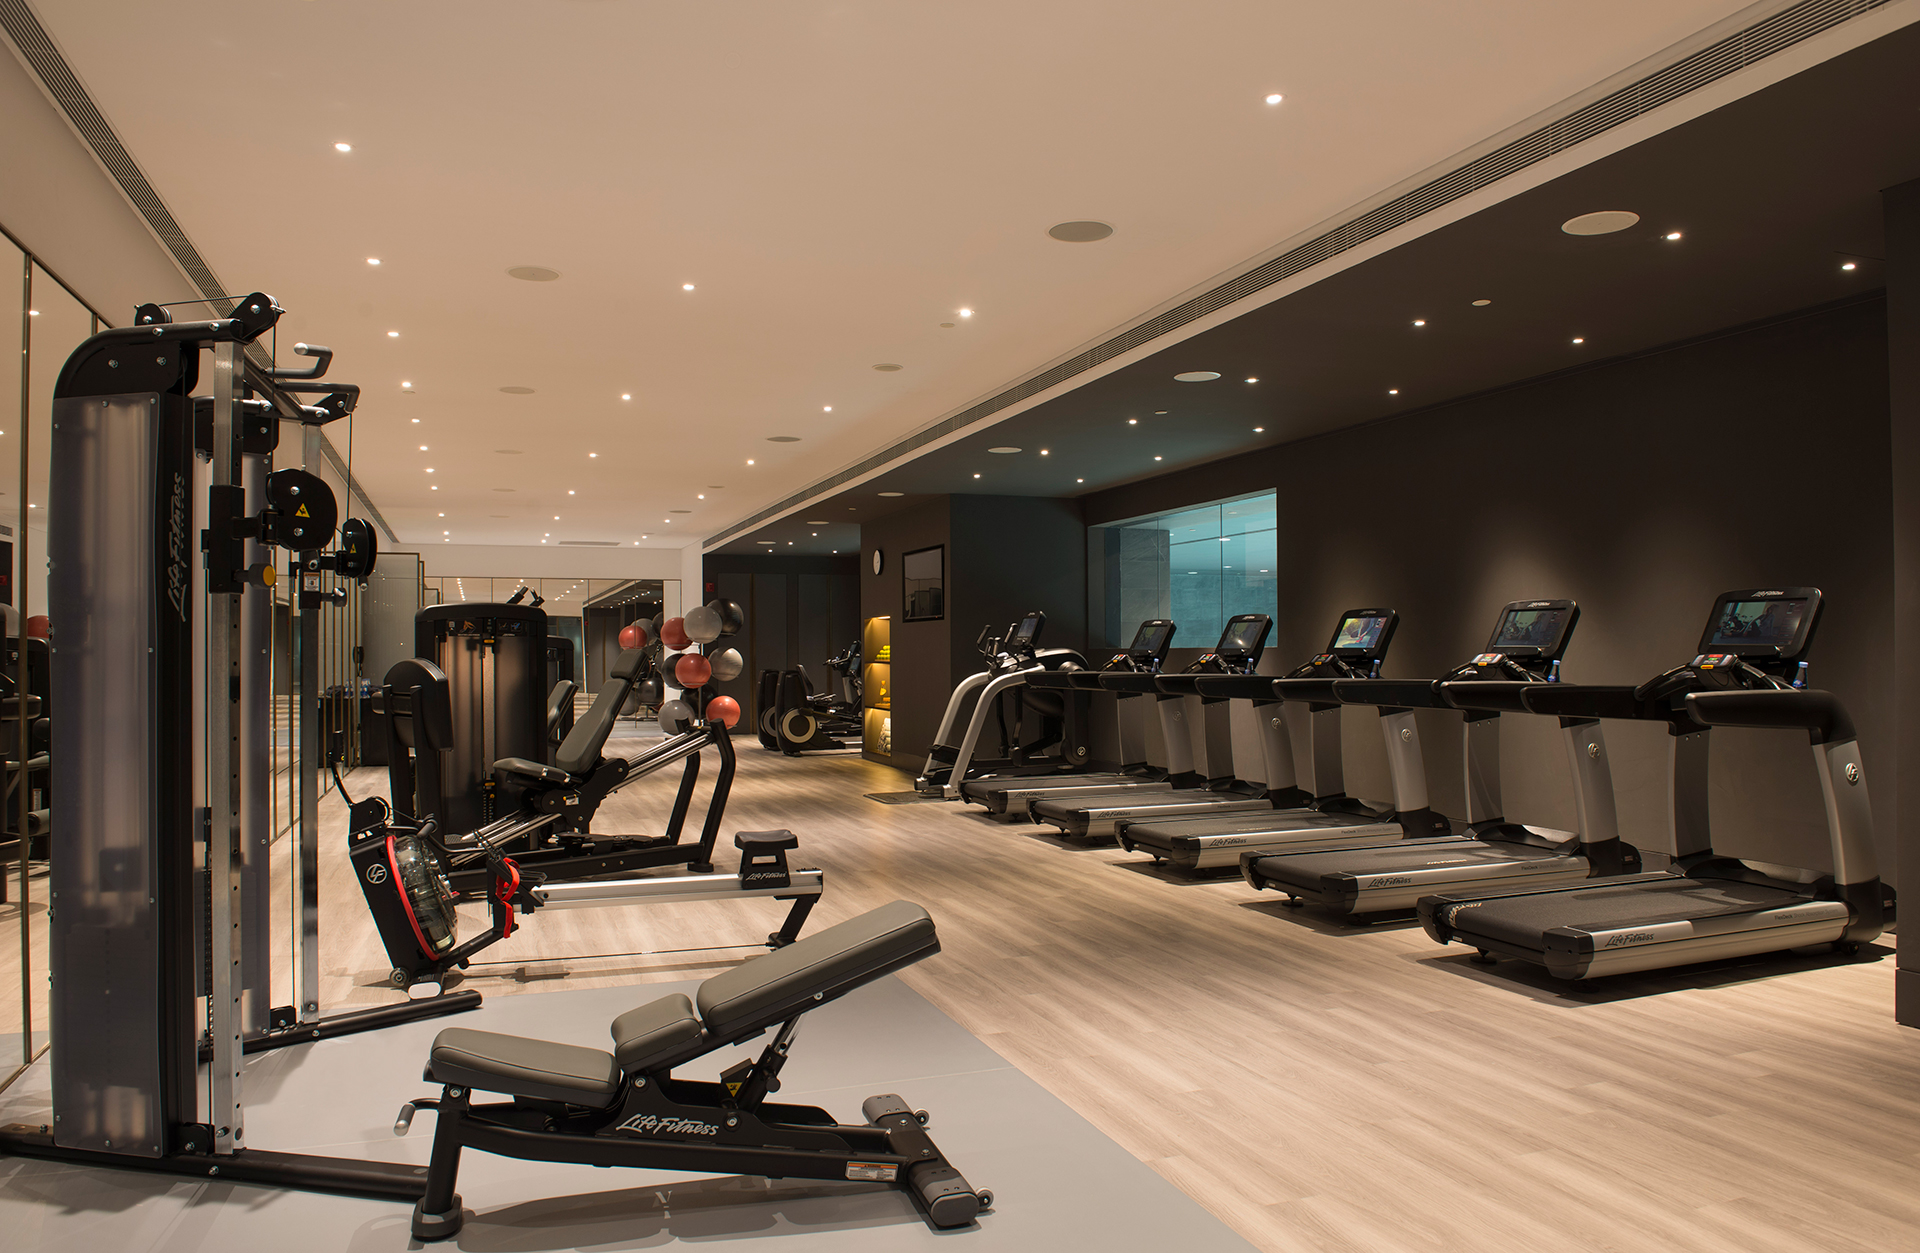 The Sukhothai Shanghai State of the Art Fitness Centre